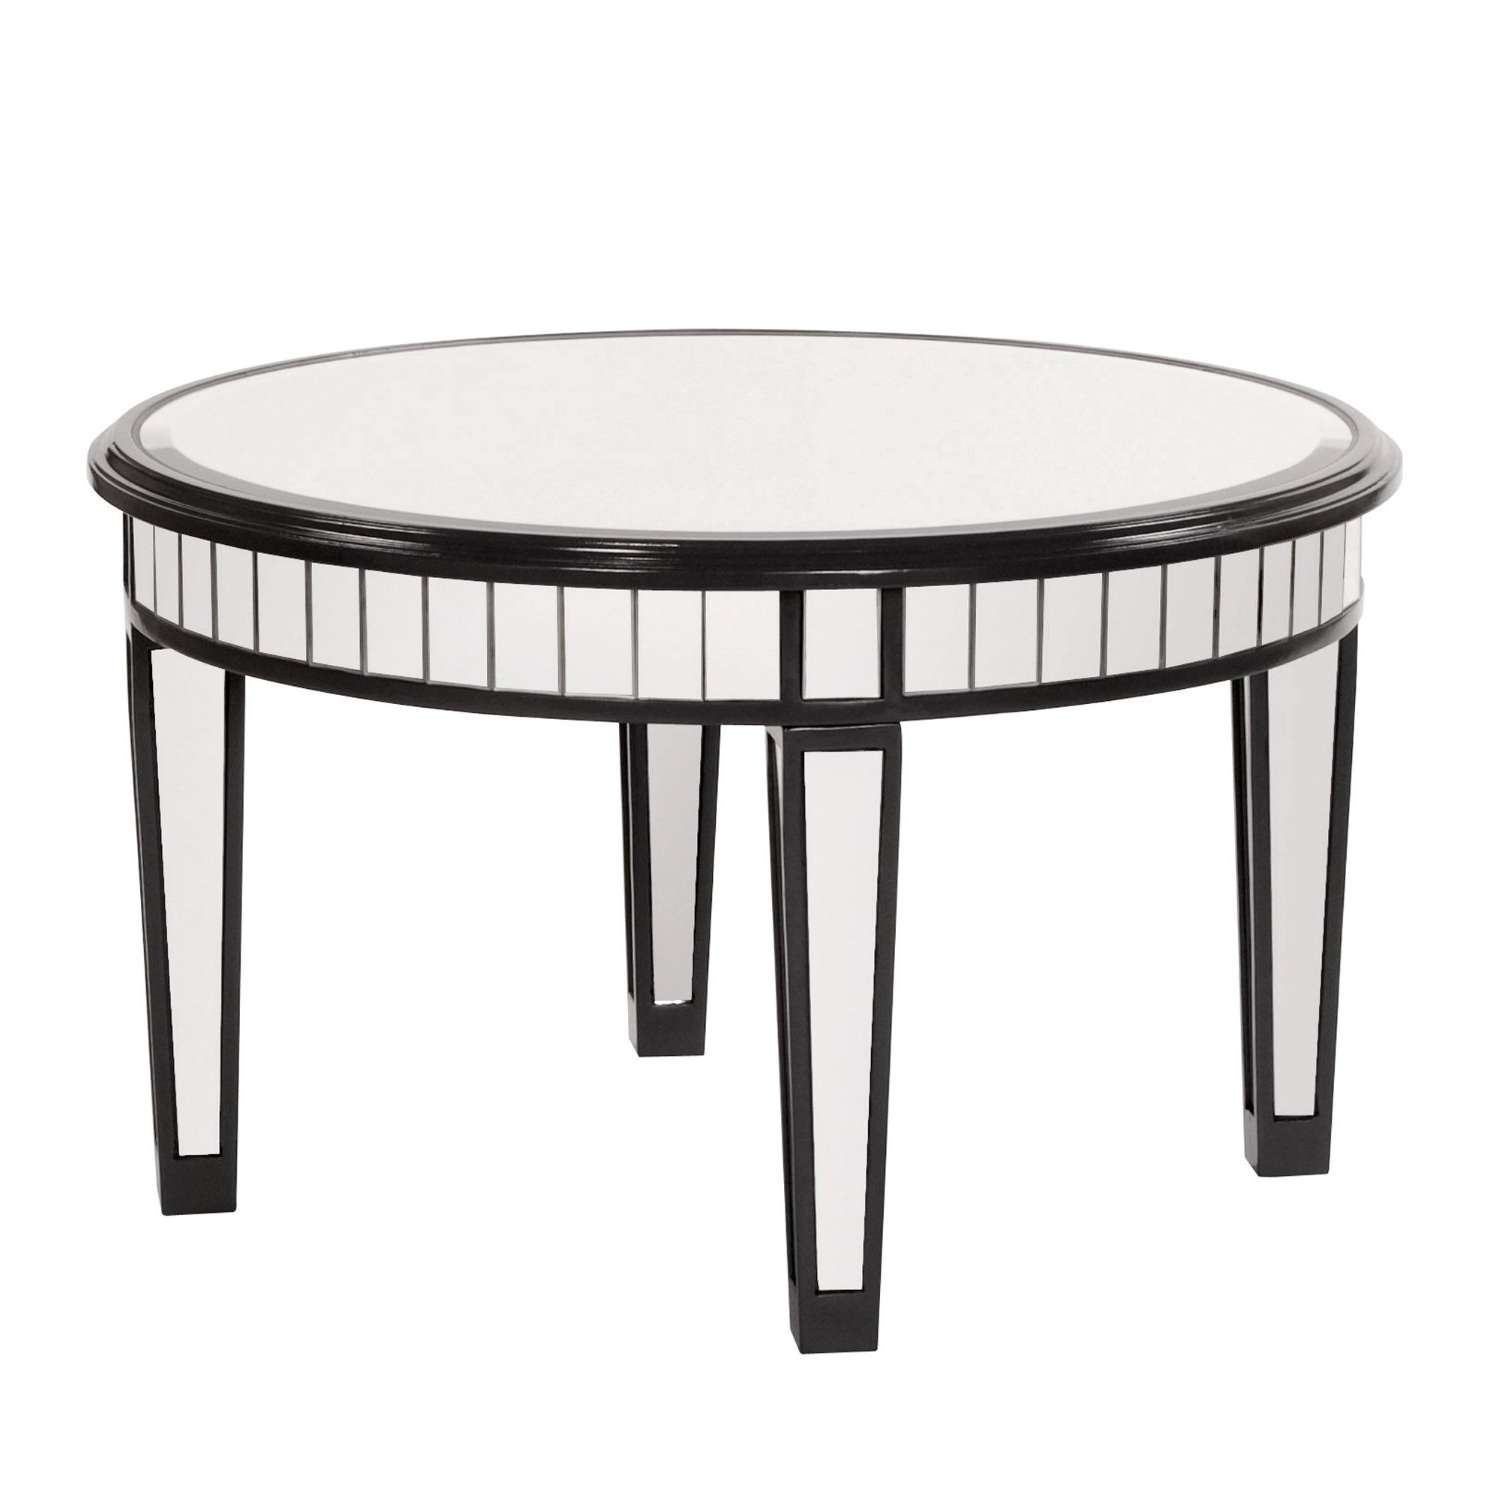 Preferred Small Mirrored Coffee Tables For Ideas: Mesmerizing Mirrored Coffee Table With Glass And Wood (View 20 of 20)